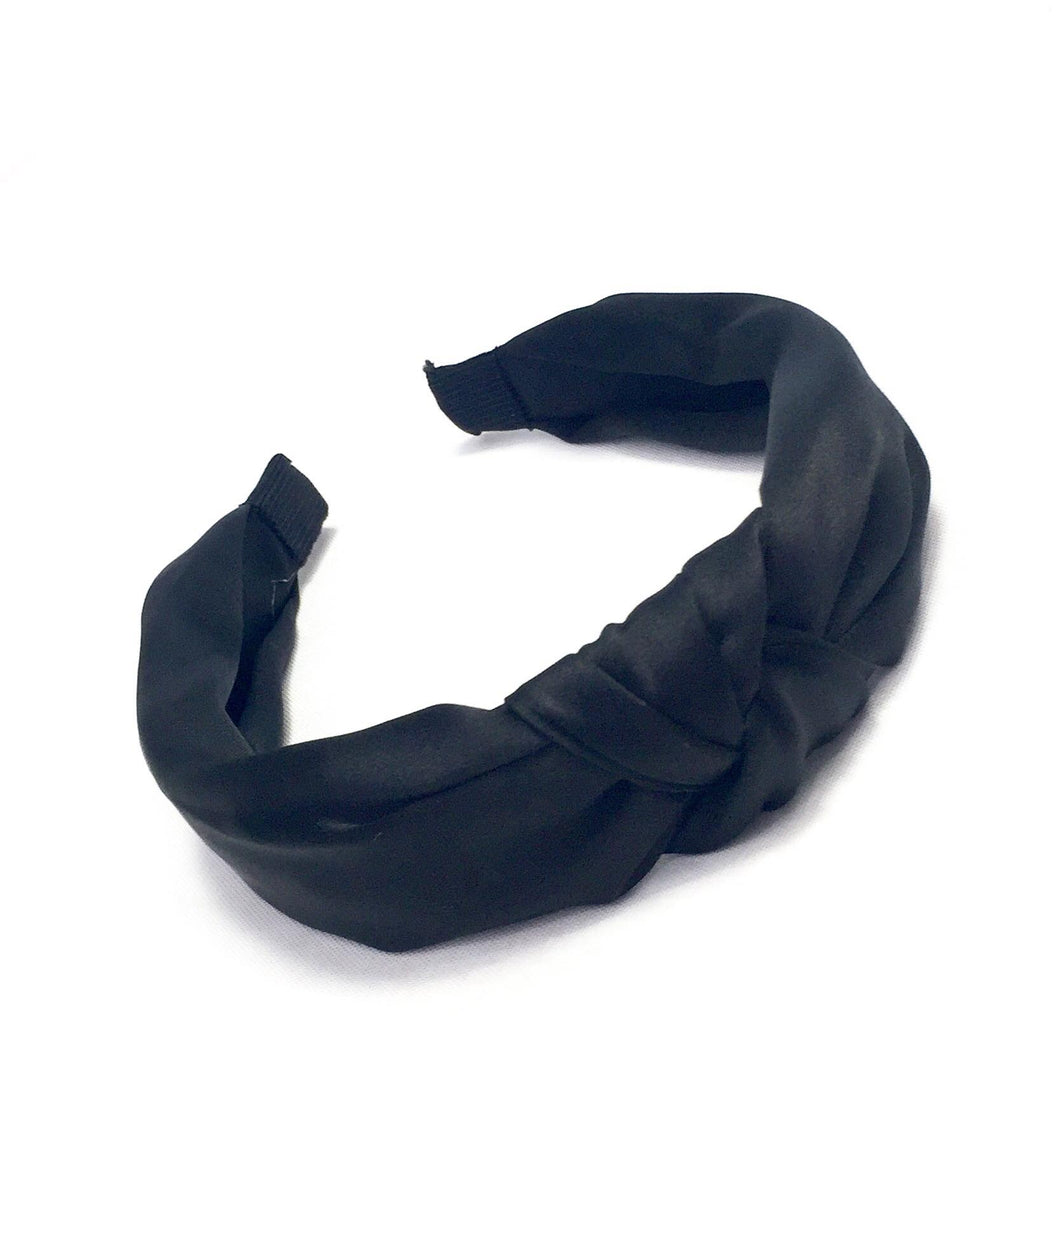 Onyx black silky knotted headband